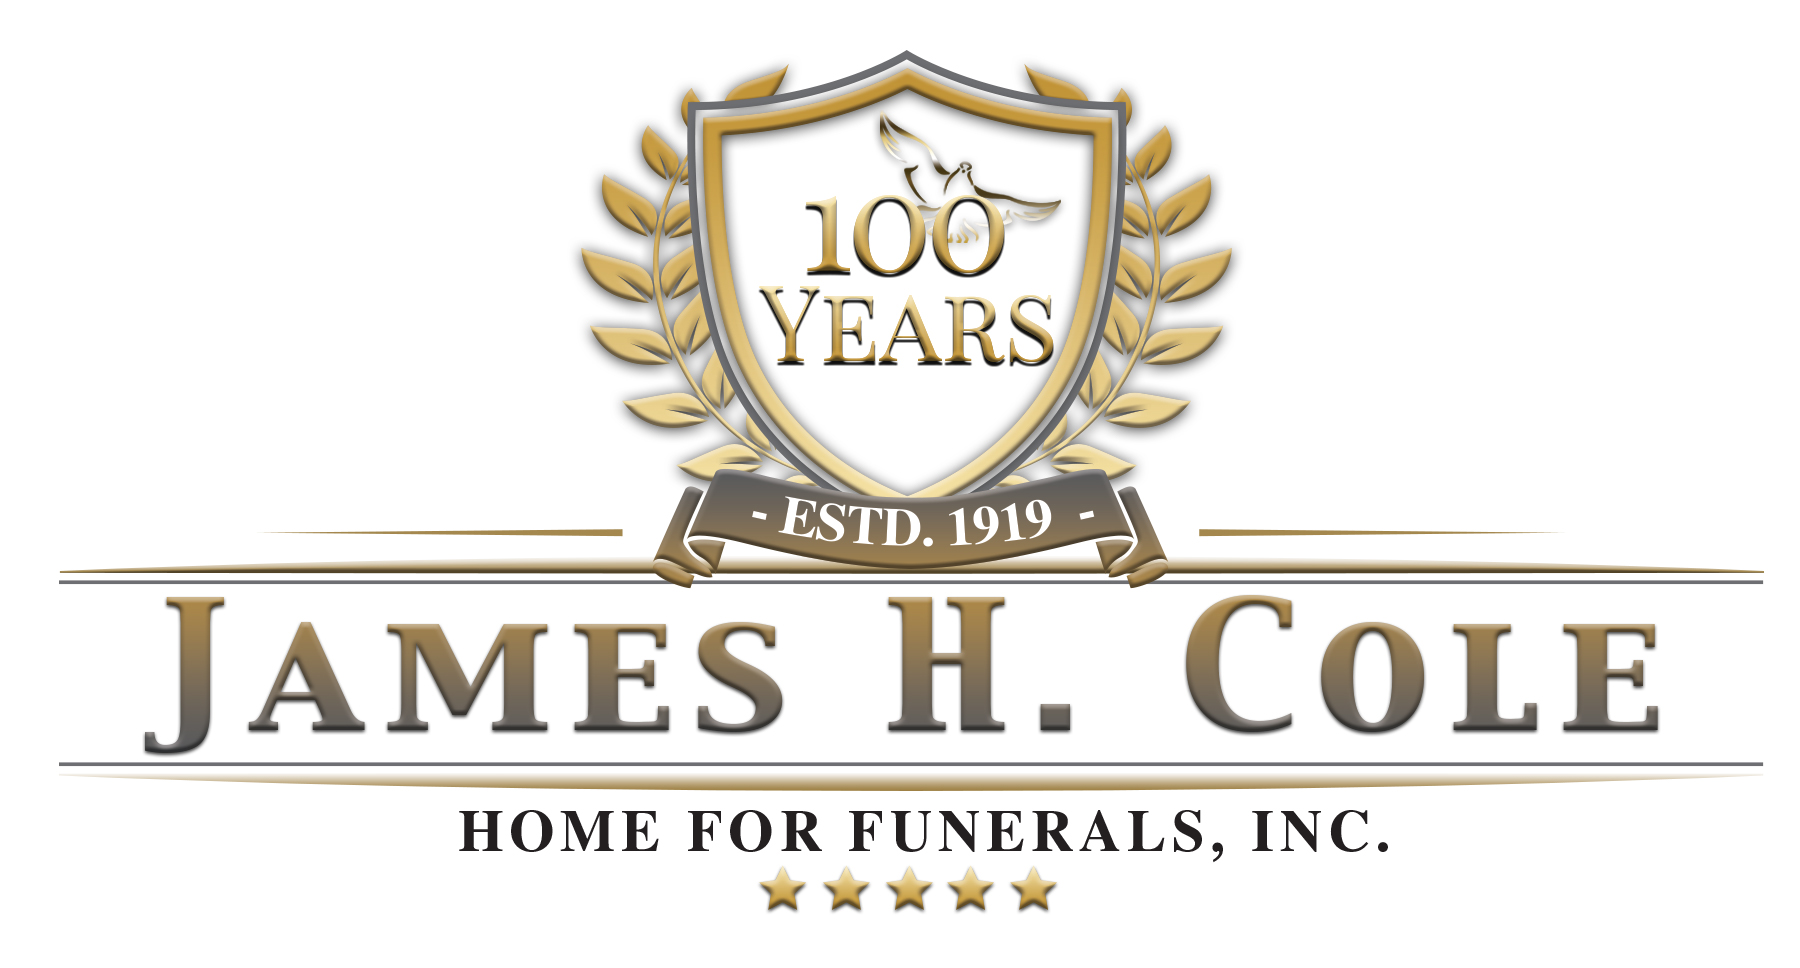 James H. Cole Home for Funerals Celebrates 100 Years in Business